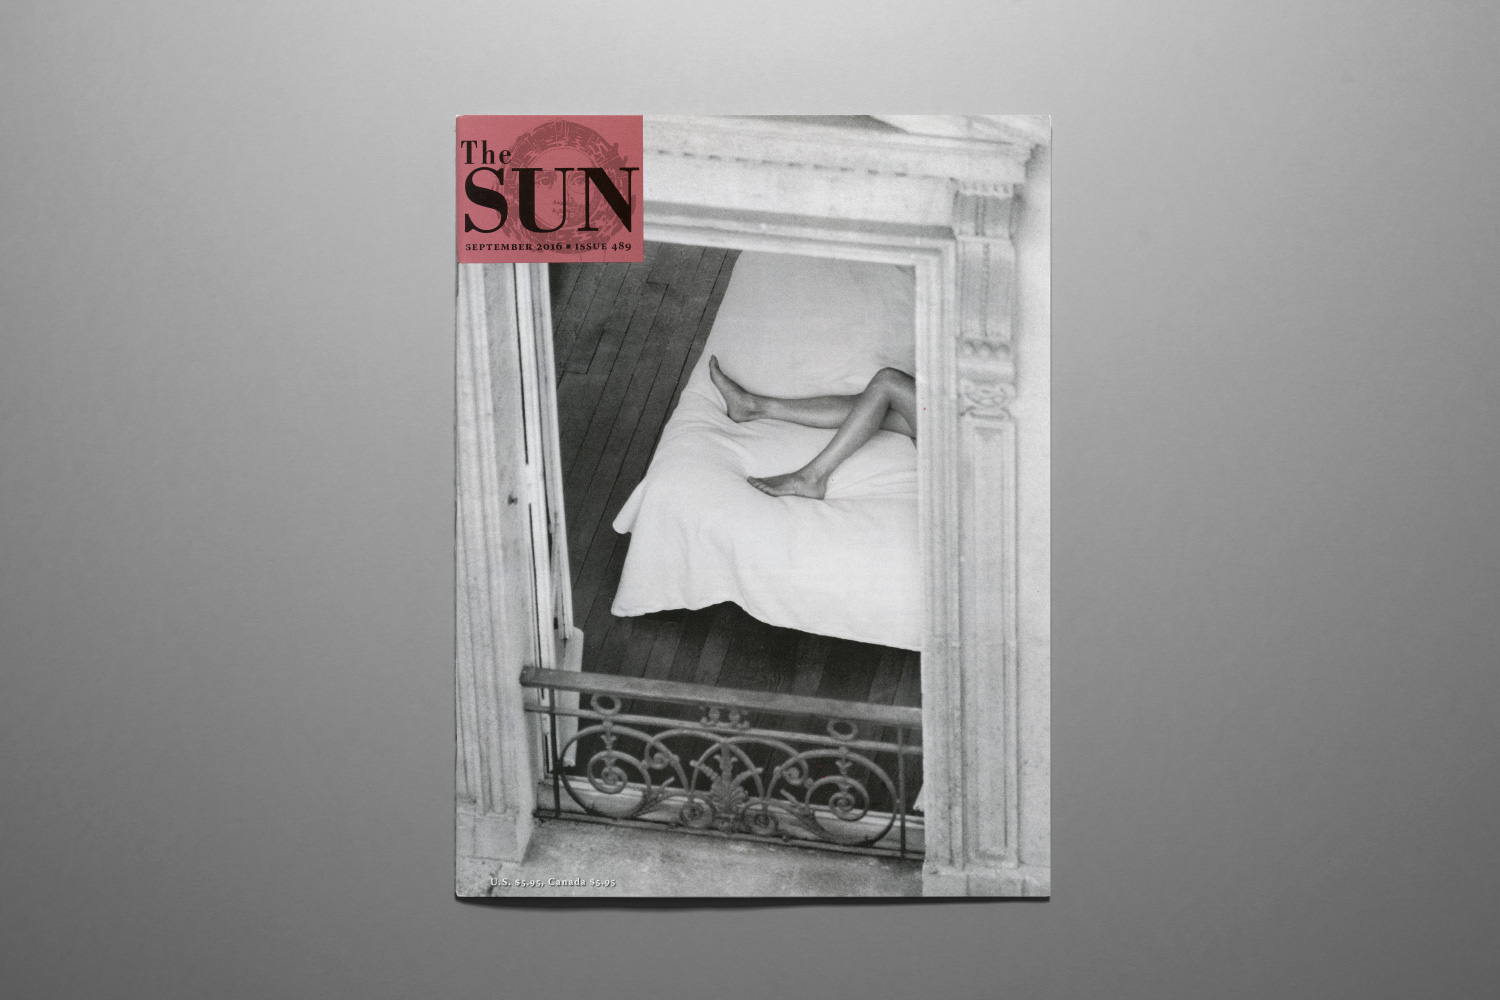 The Sun magazine #489 (couverture - cover) - Sept. 2016